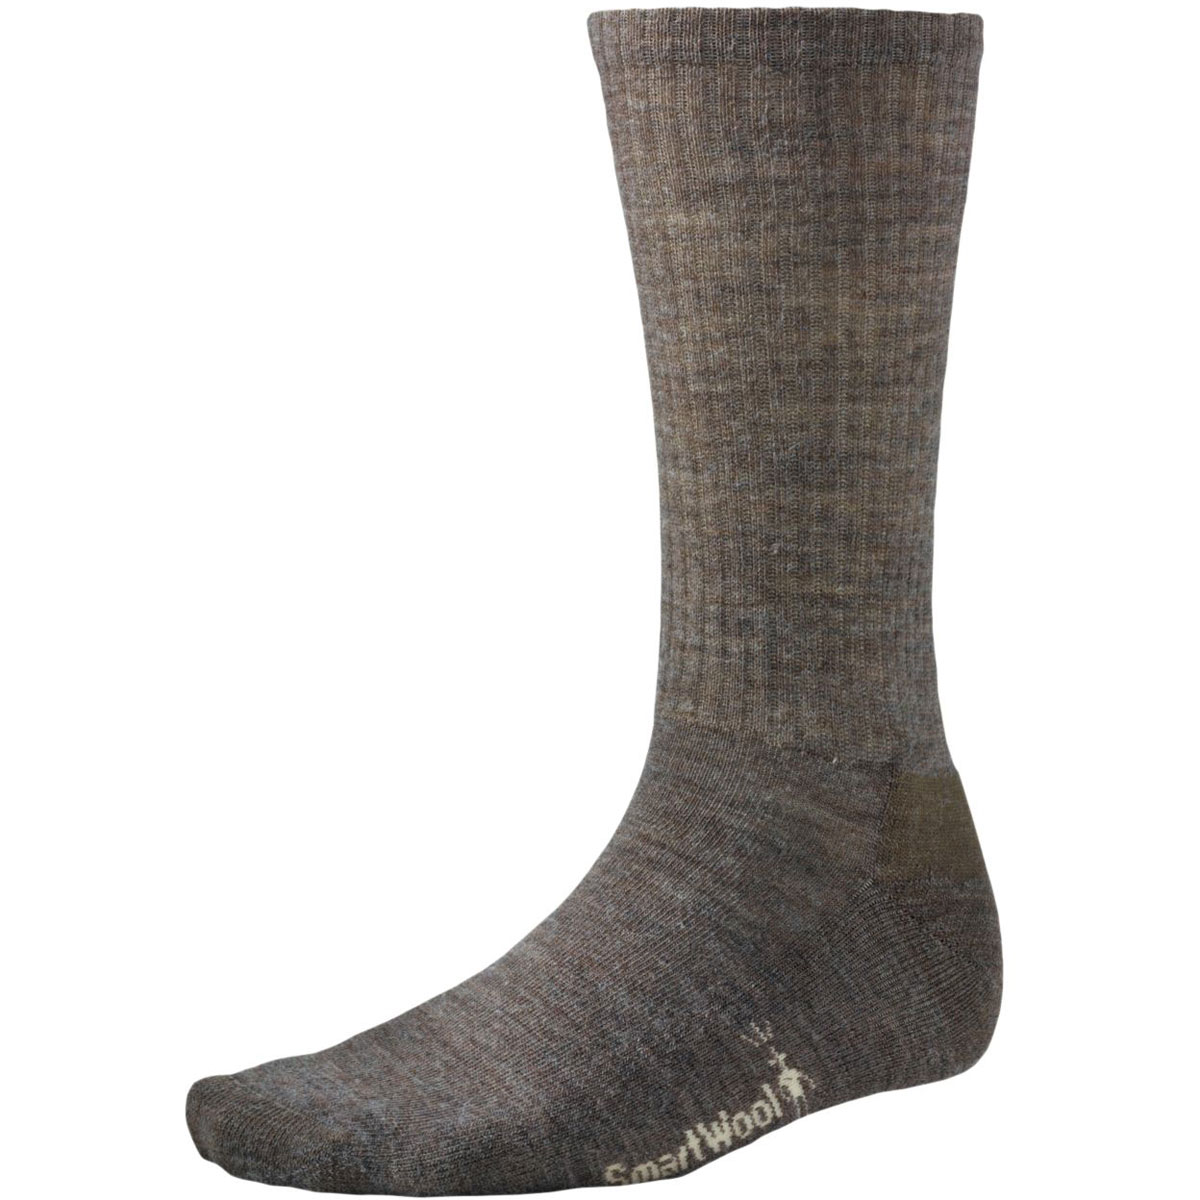 Murdoch's blog: the dirt how to wash your new smartwool socks.